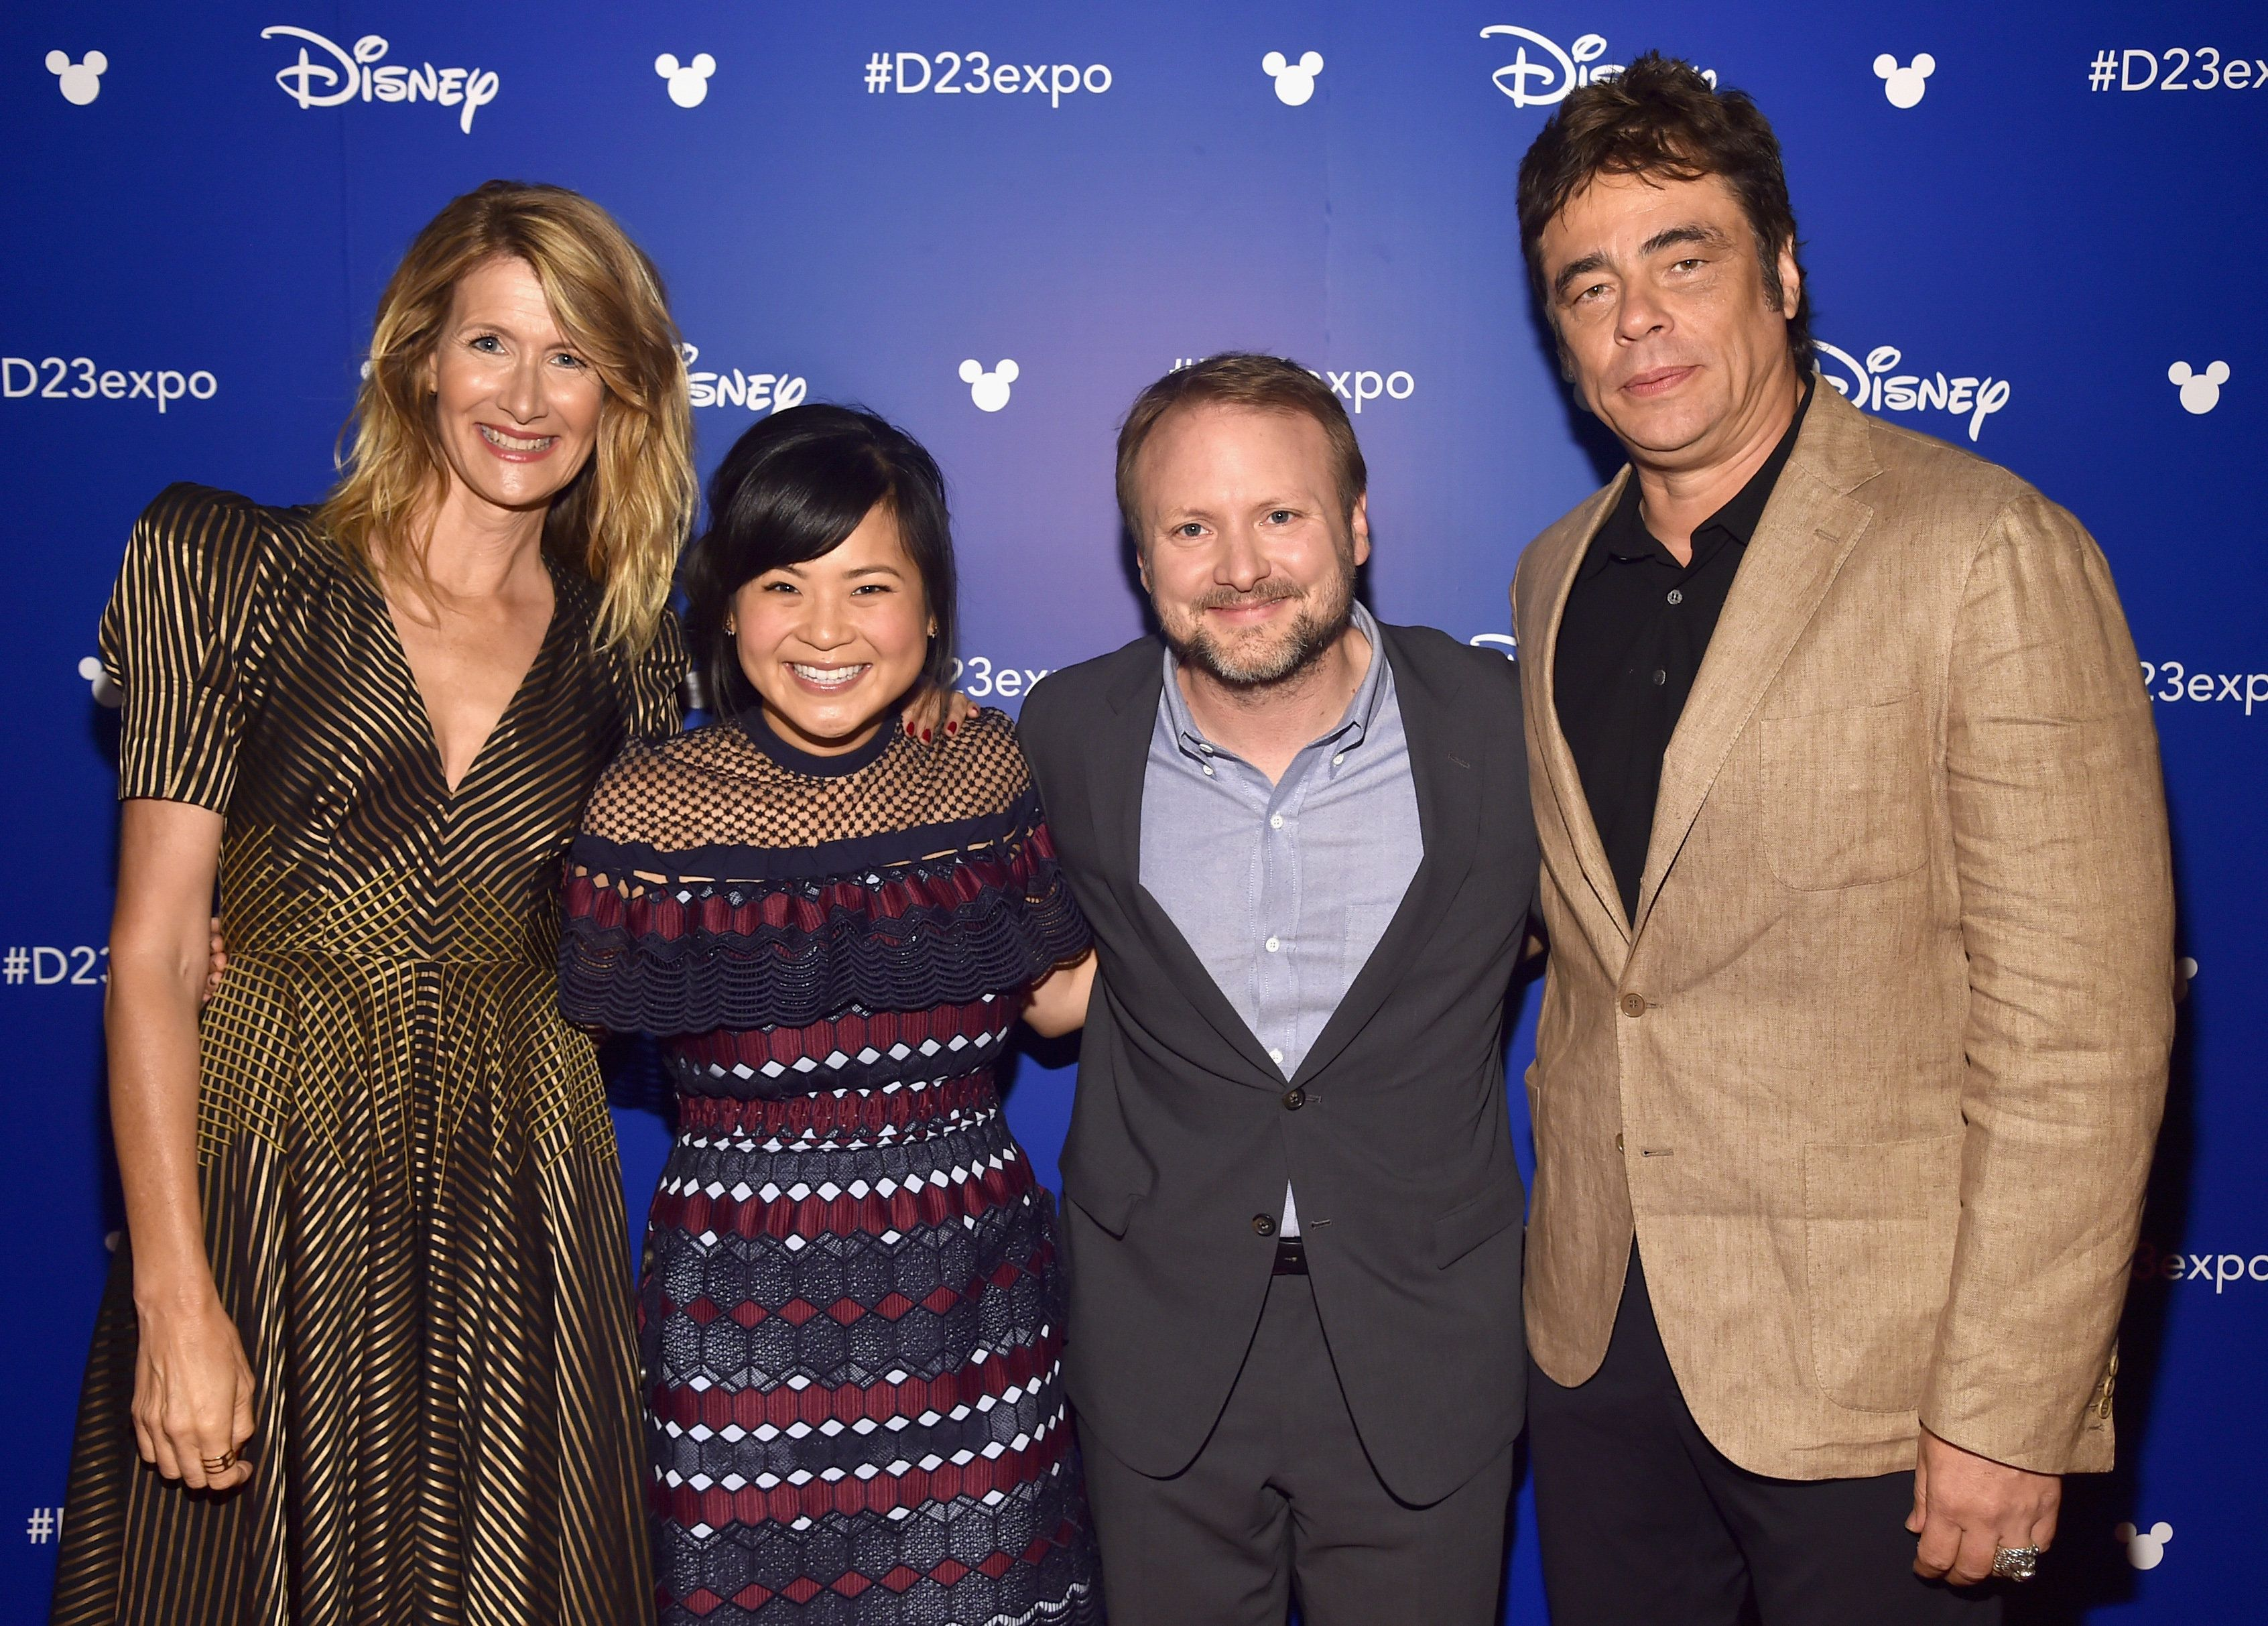 ANAHEIM, CA - JULY 15:  (L-R) Actors Laura Dern and Kelly Marie Tran, director Rian Johnson, and actor Benicio del Toro of STAR WARS: THE LAST JEDI took part today in the Walt Disney Studios live action presentation at Disney's D23 EXPO 2017 in Anaheim, Calif. STAR WARS: THE LAST JEDI will be released in U.S. theaters on  December 15, 2017.  (Photo by Alberto E. Rodriguez/Getty Images for Disney)